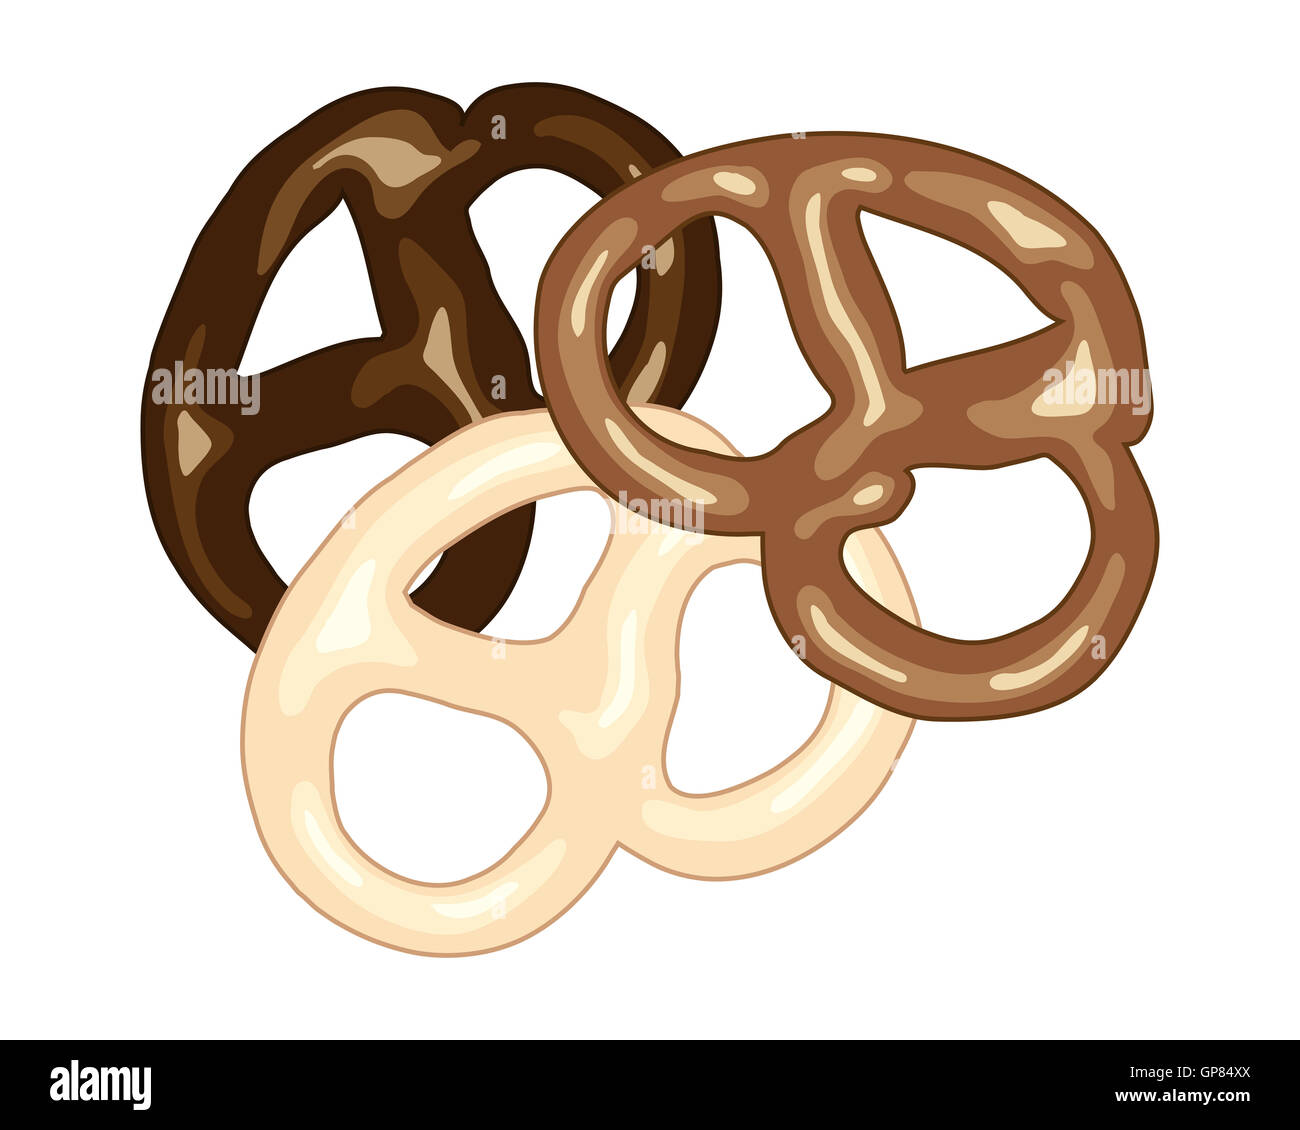 an illustration of dark milk and white chocolate covered pretzel snacks on a white background in advert format - Stock Image